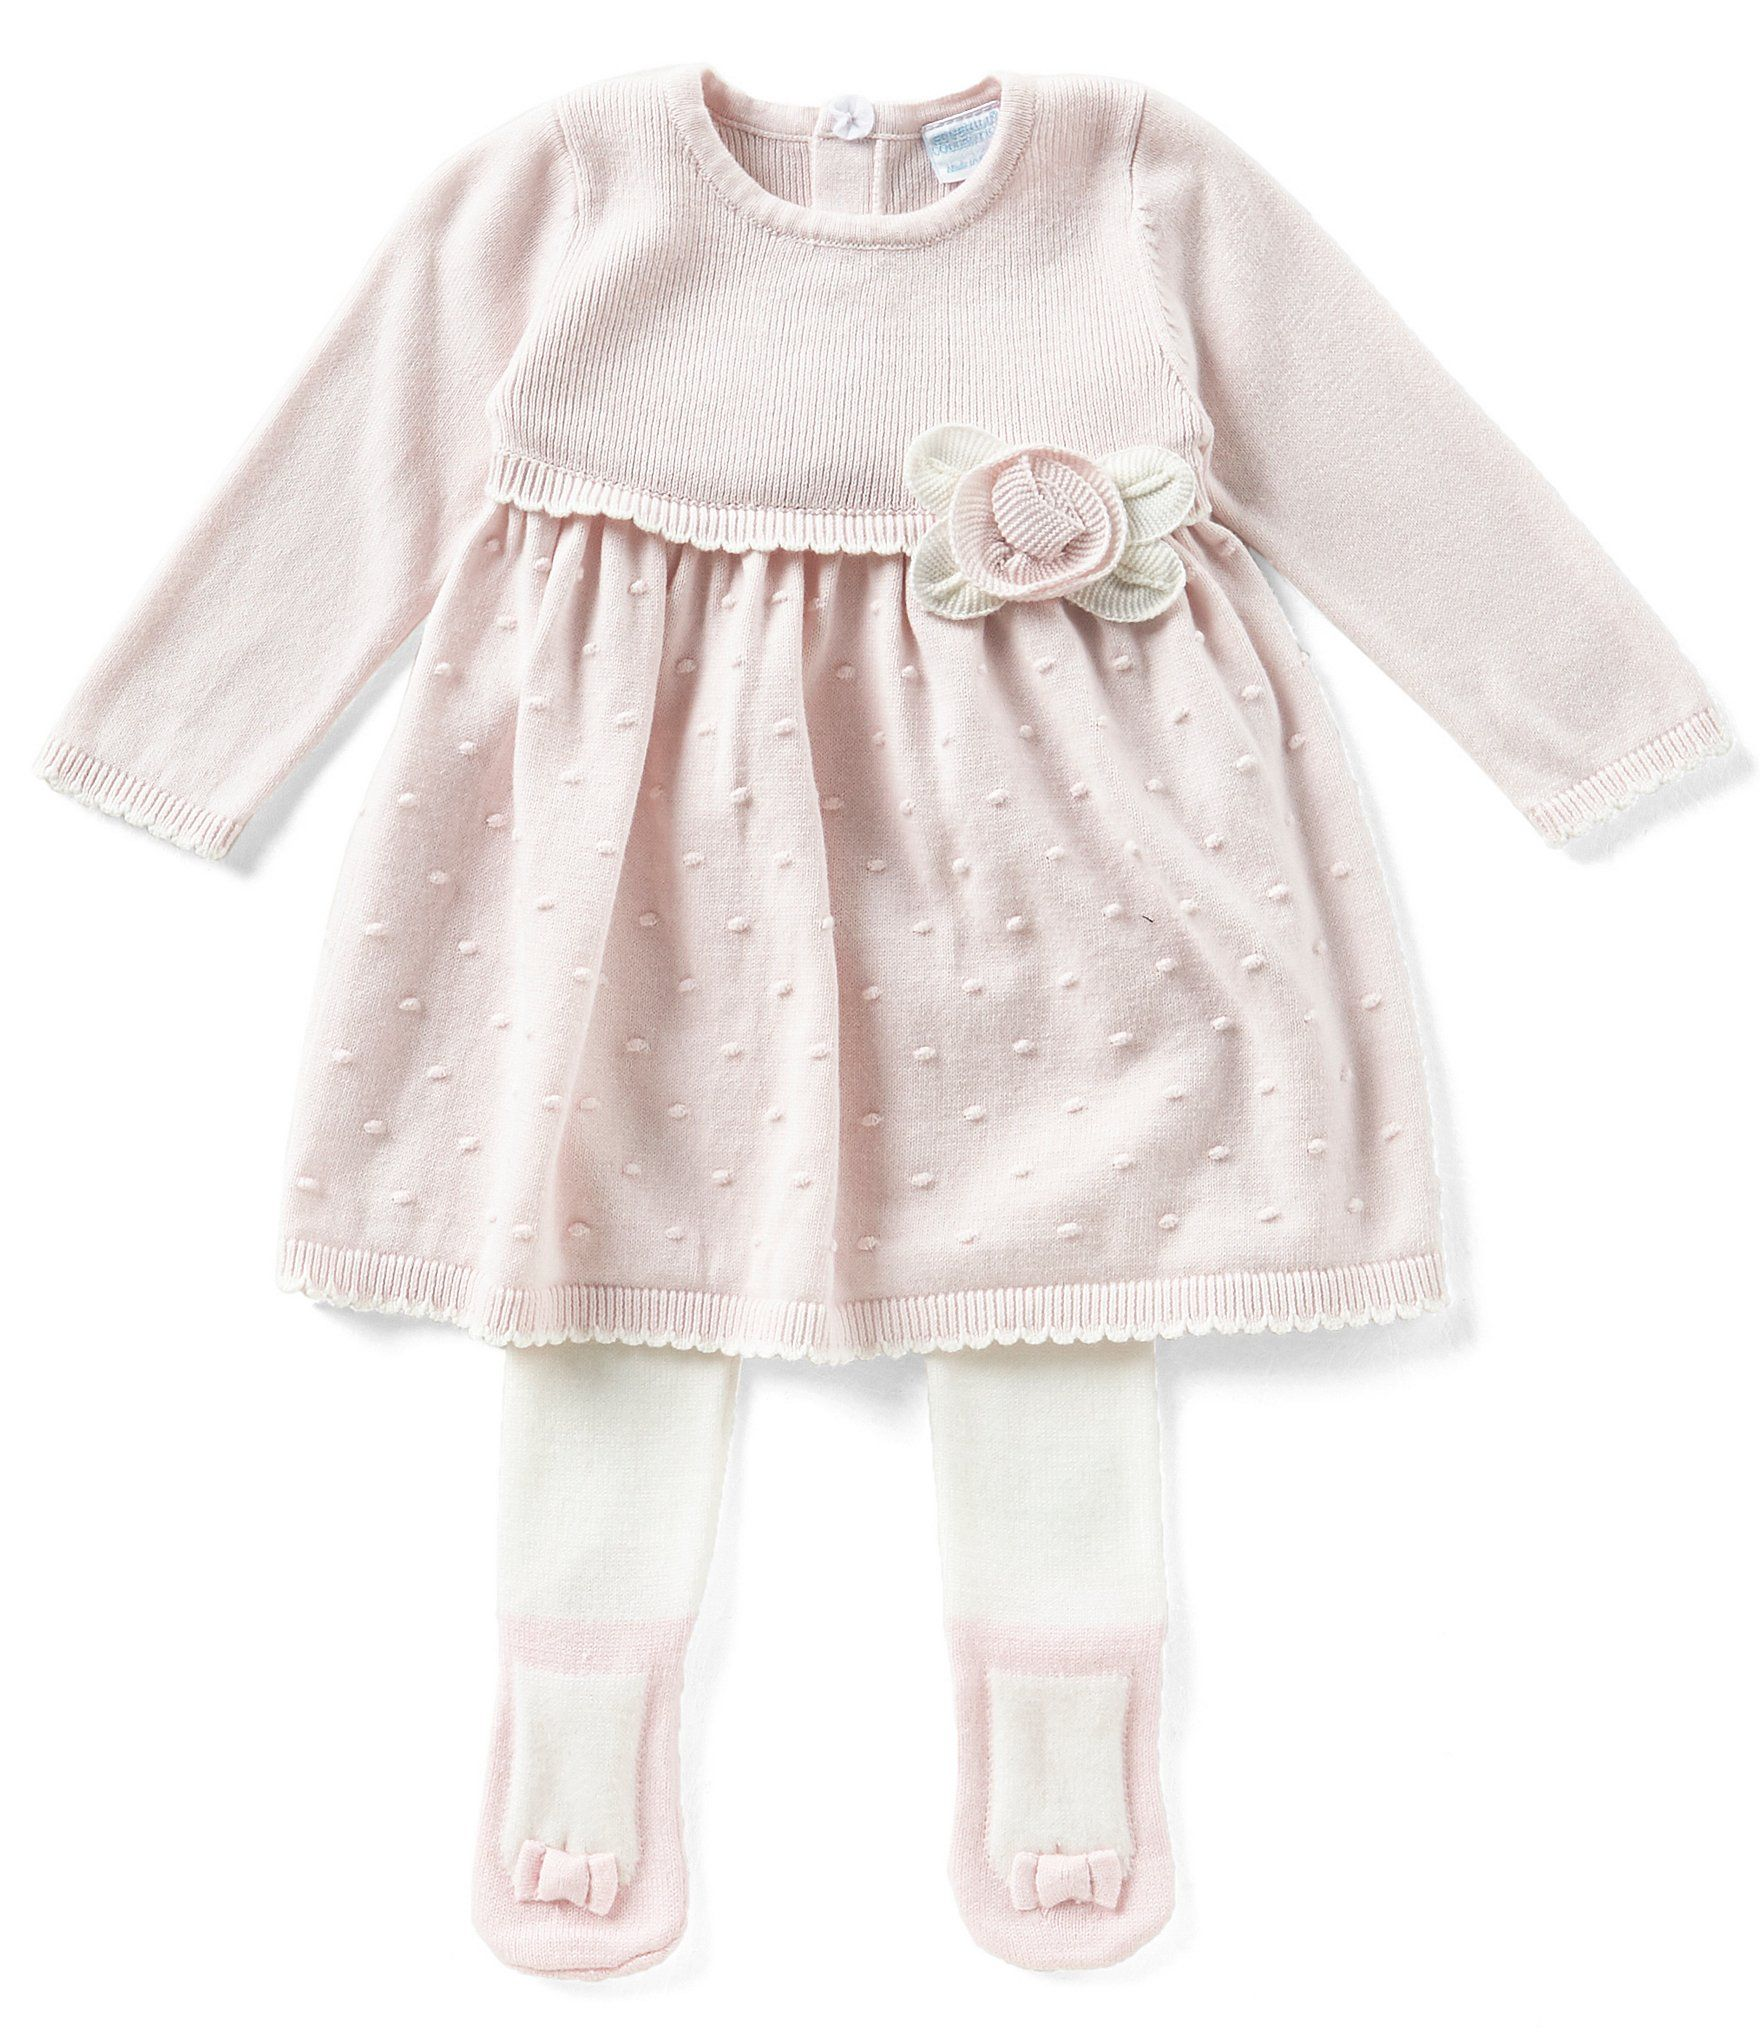 Edgehill Collection Baby Girls Newborn 6 Months Flower Applique